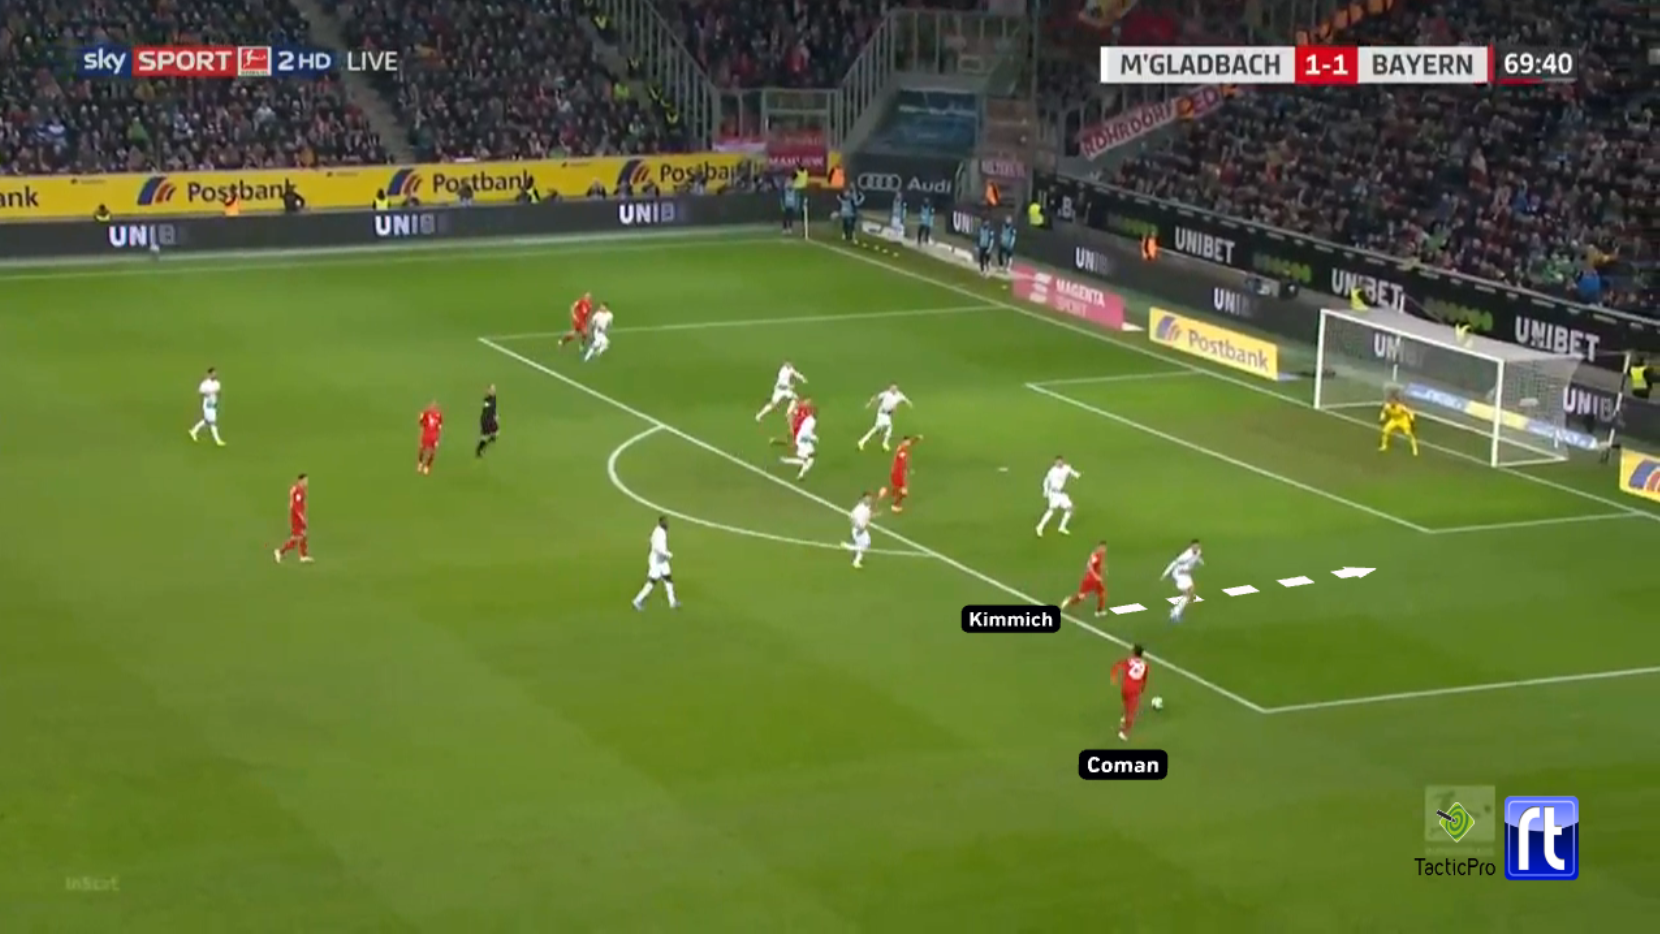 Hans-Dieter Flick at Bayern Munich 2019/20 - tactical analysis tactics